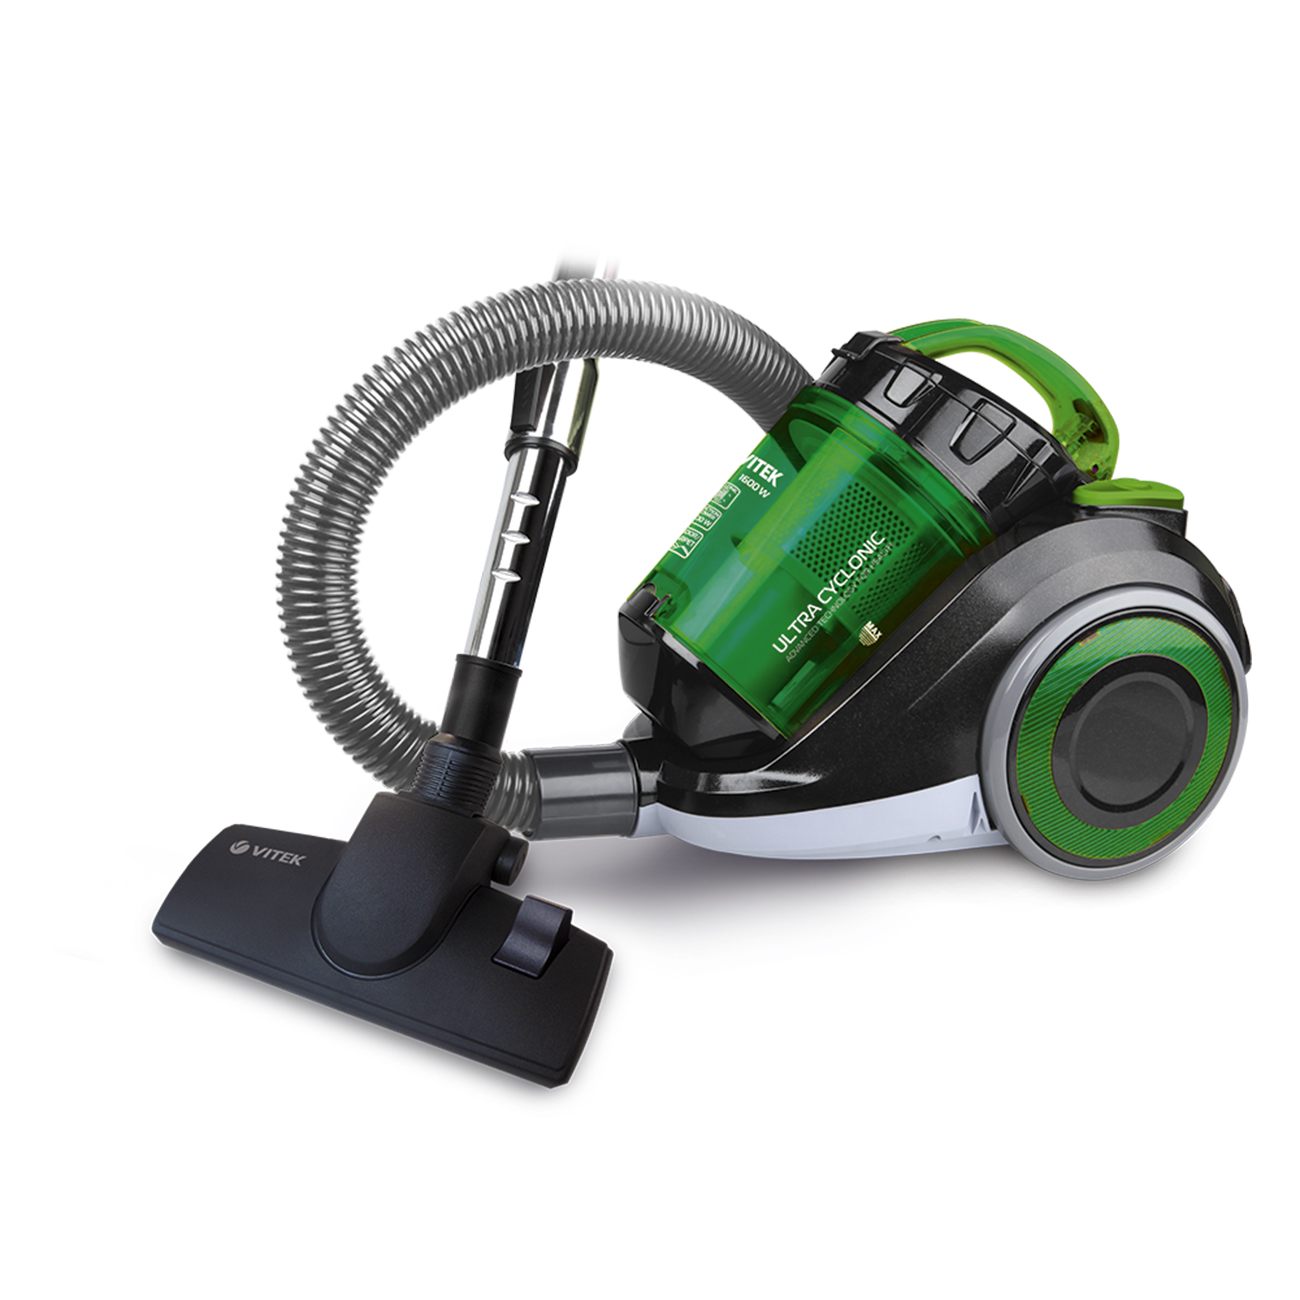 The electric vacuum cleaner Vitek VT-1815 G пылесос vitek vt 1815 g